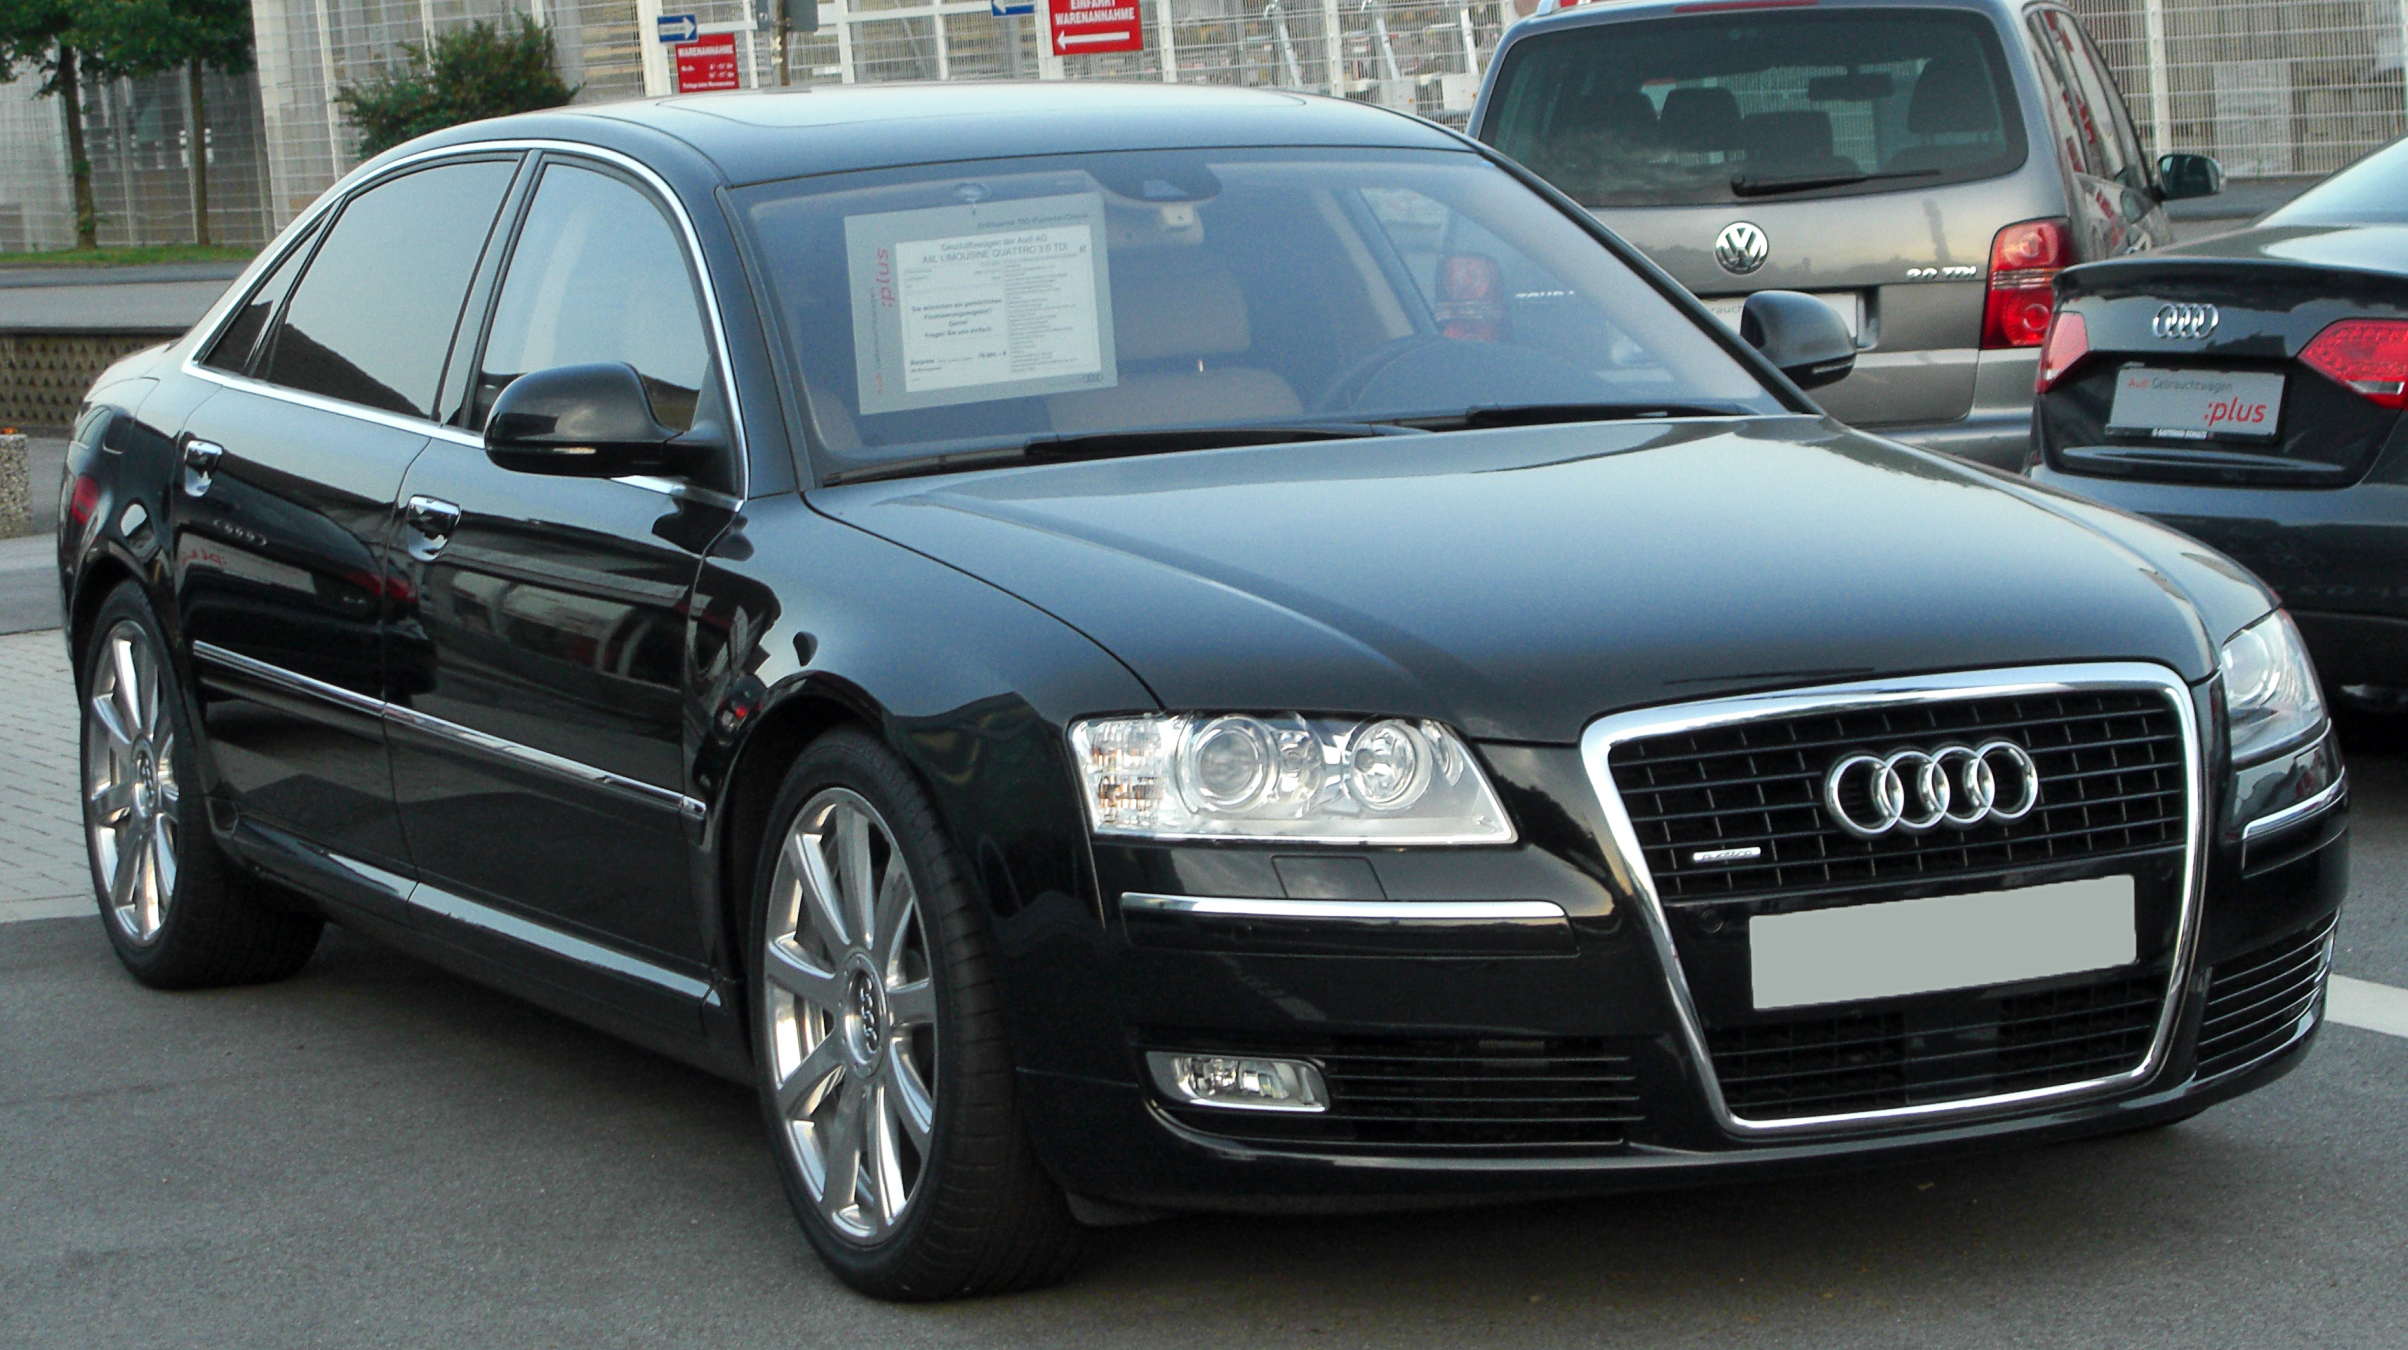 Audi A8 3 0 Tdi Quattro Technical Details History Photos